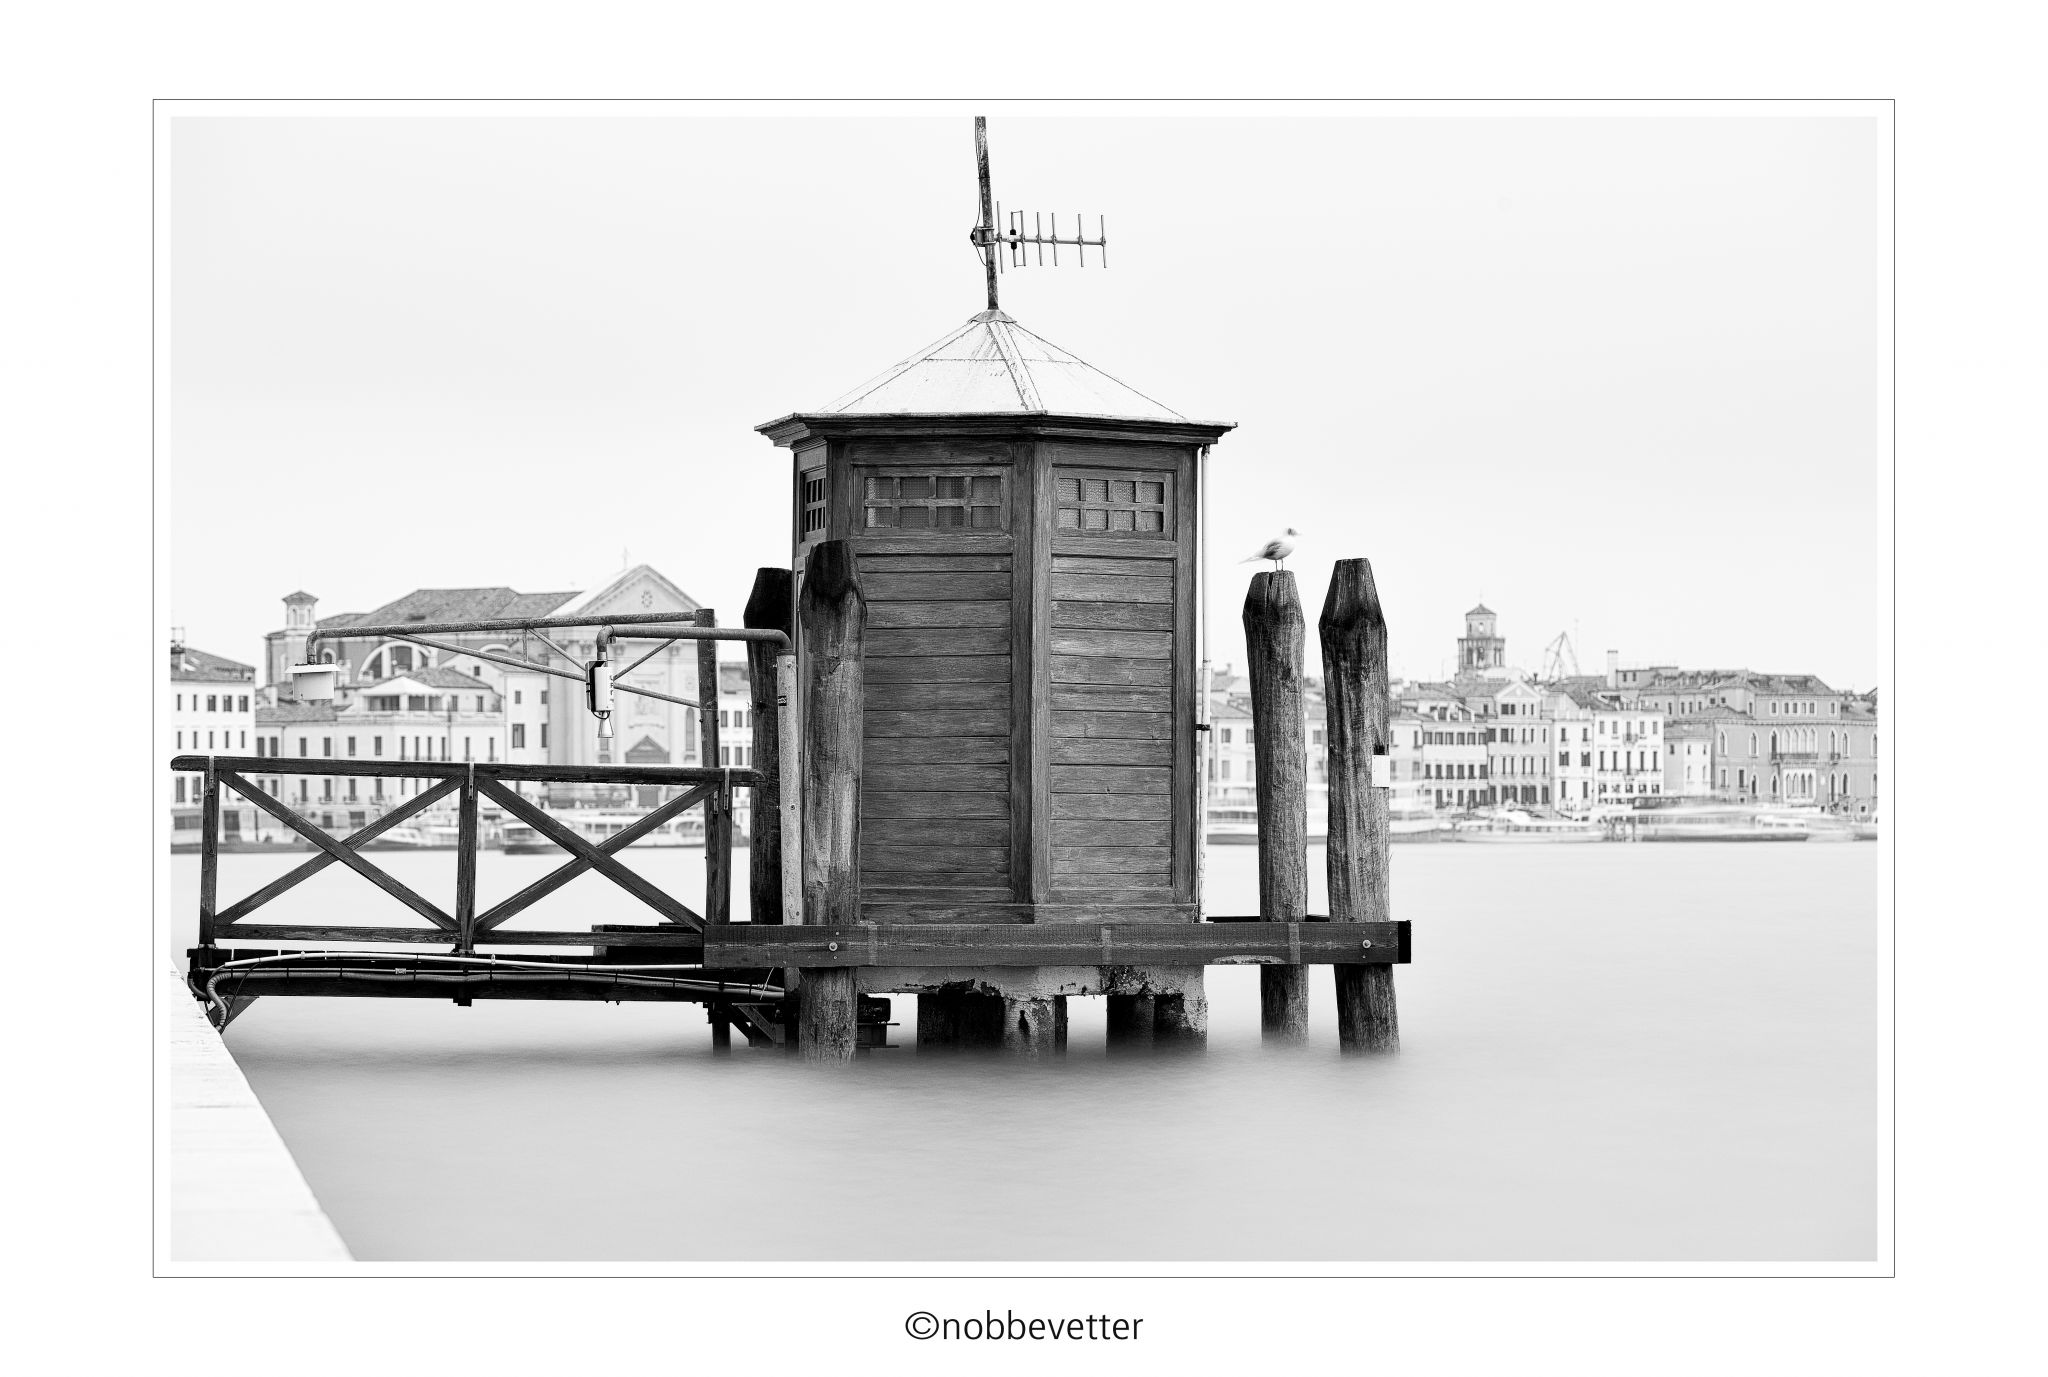 Measuring station in Venice, Italy